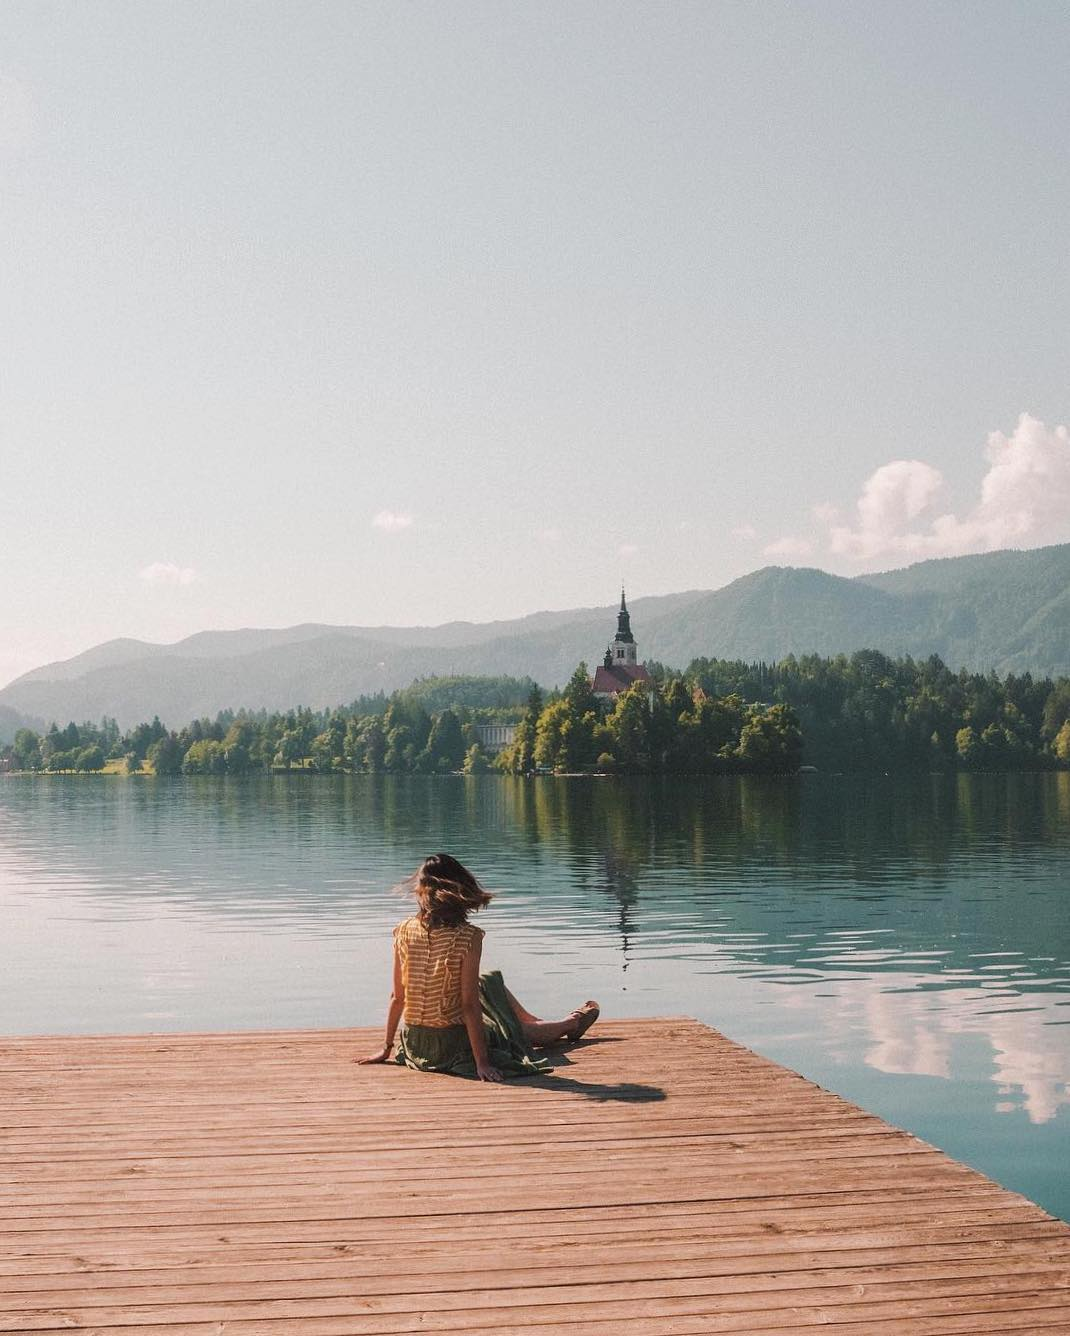 Catch the last traces of summer ️ and at the same time the first autumn  breezes. And after this; just enjoy the beautiful scenery of Bled Island, the only island in Slovenia.  Thanks @jessomewhere for sharing your photo with #ifeelsLOVEnia.